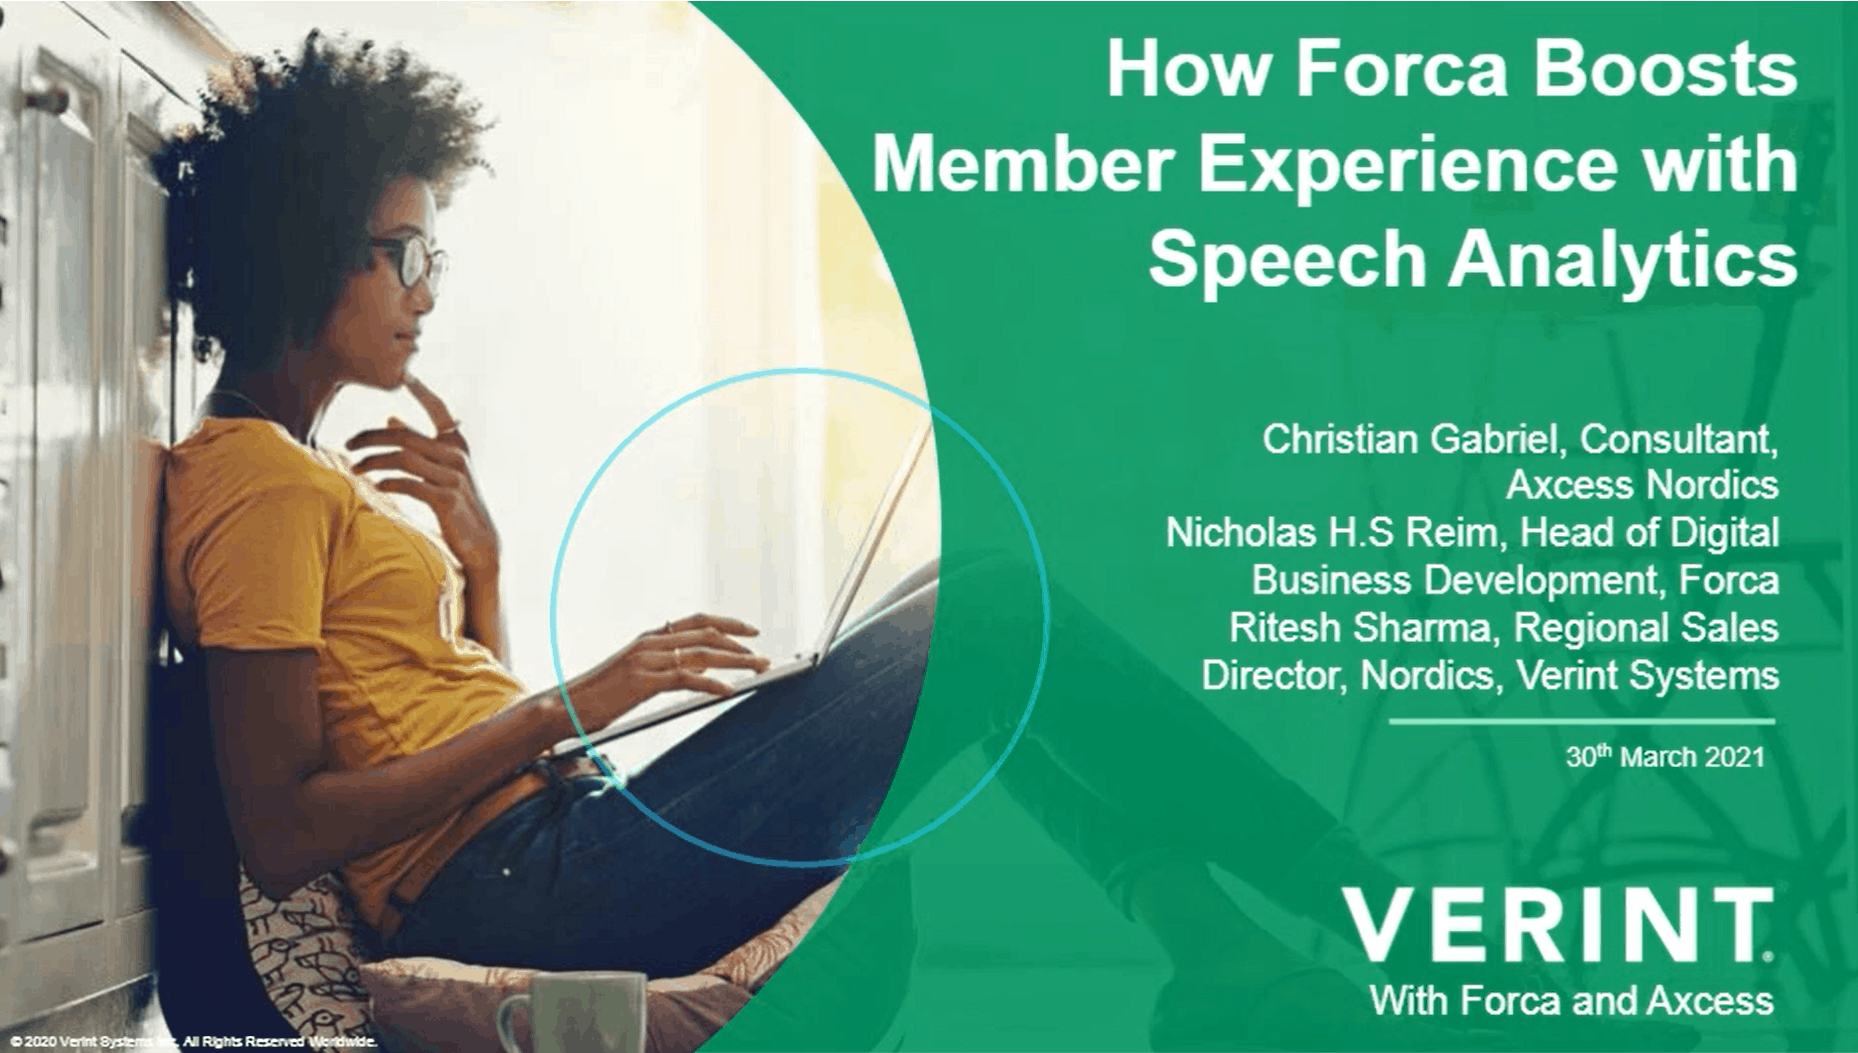 How Forca Boosts Member Experience with Speech Analytics